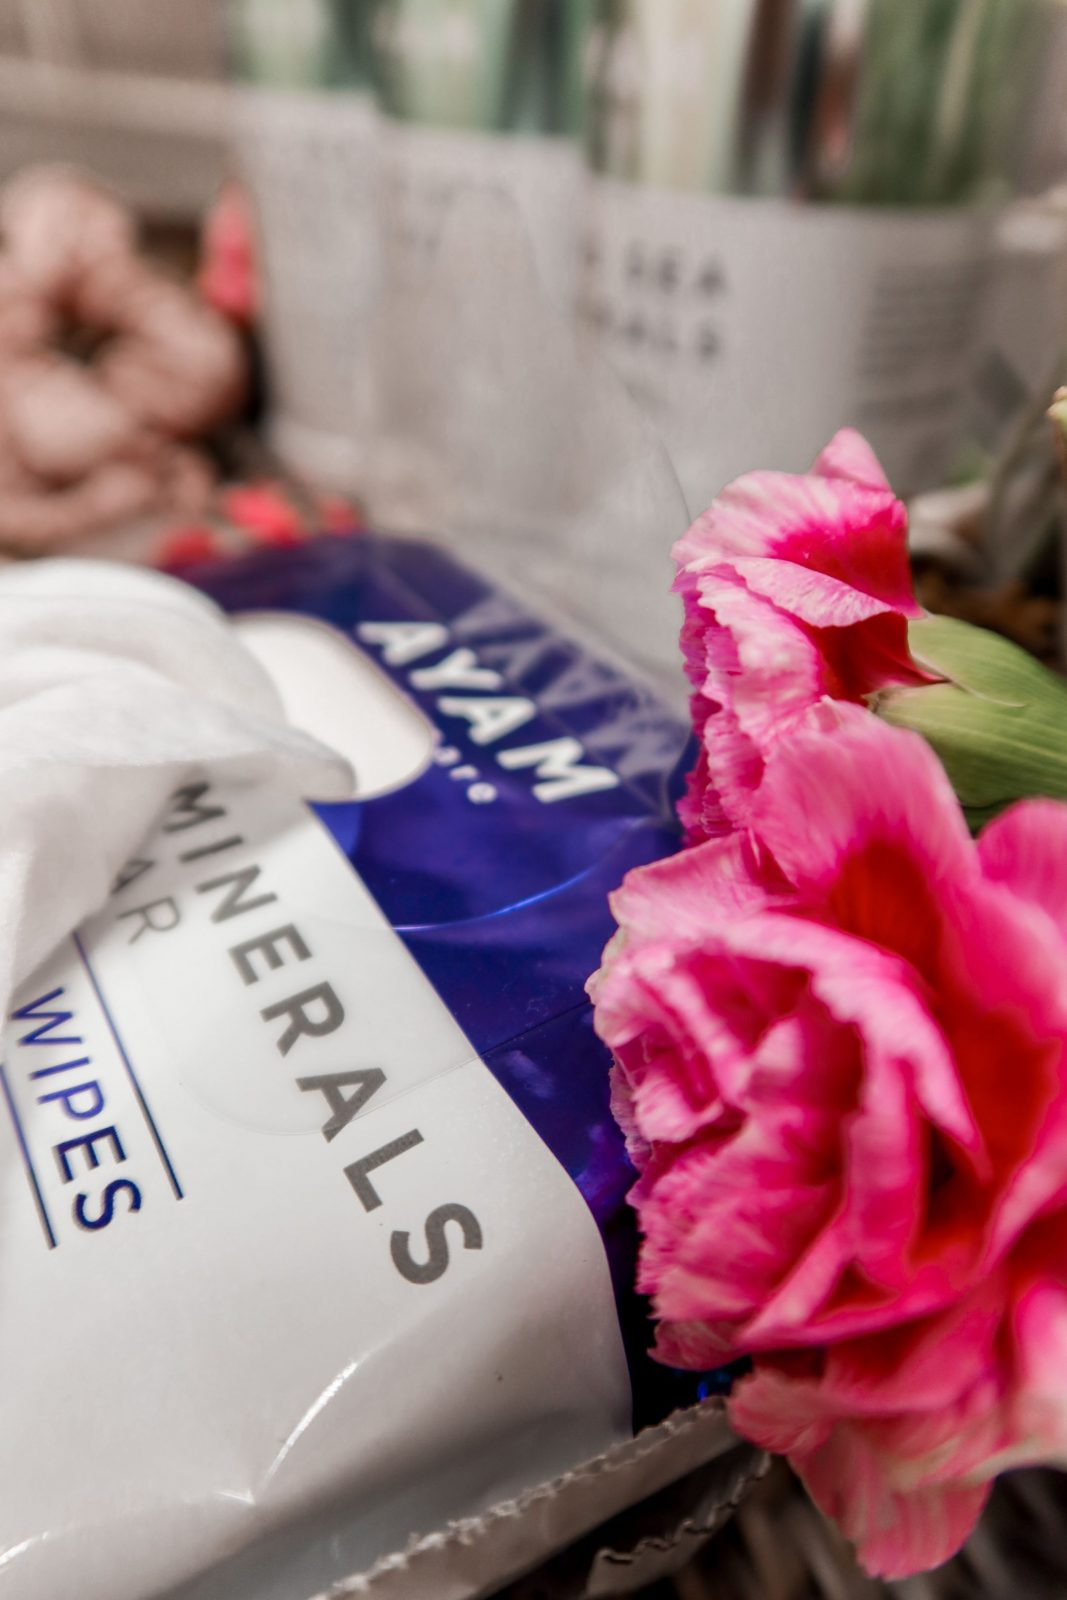 This is a close up of the Ayam Beauty makeup removing wipes, with some beautiful pink flowers as a prop to the side.